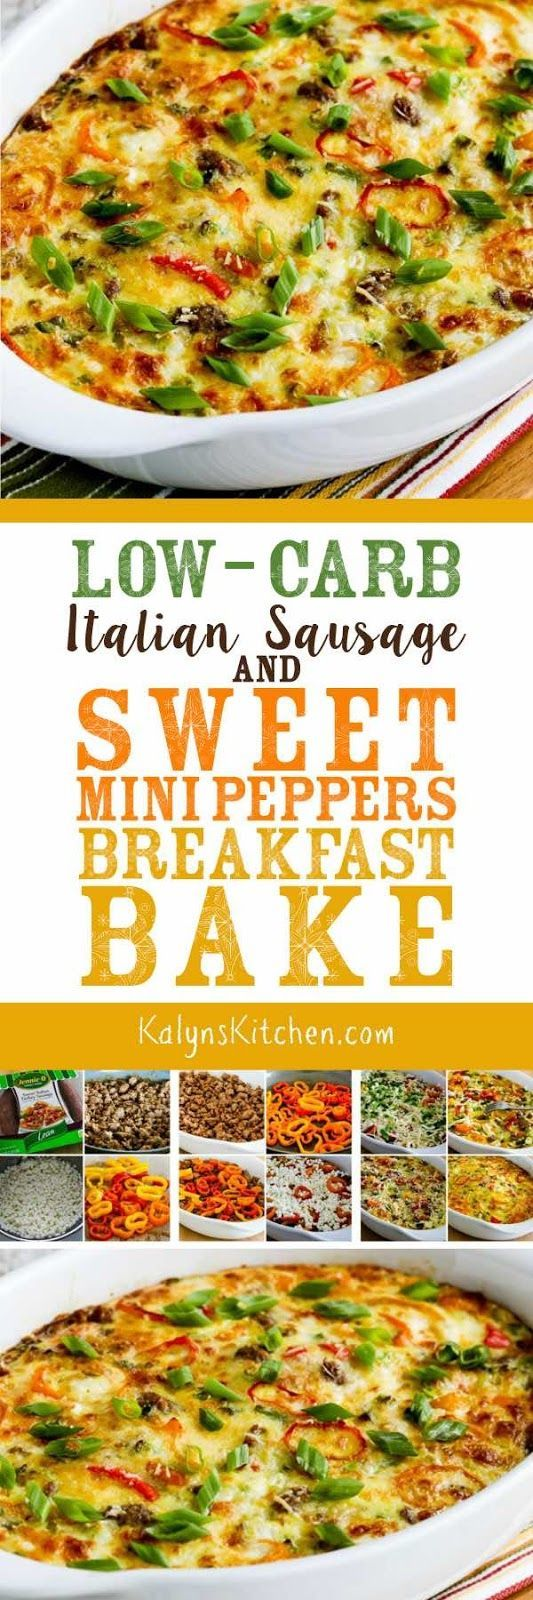 Low-Carb Italian Sausage and Sweet Mini-Peppers Breakfast Bake is a delicious option for a special breakfast, and this breakfast bake is also Keto, low-glycemic, gluten-free, and South Beach Diet friendly. [found on KalynsKitchen.com]